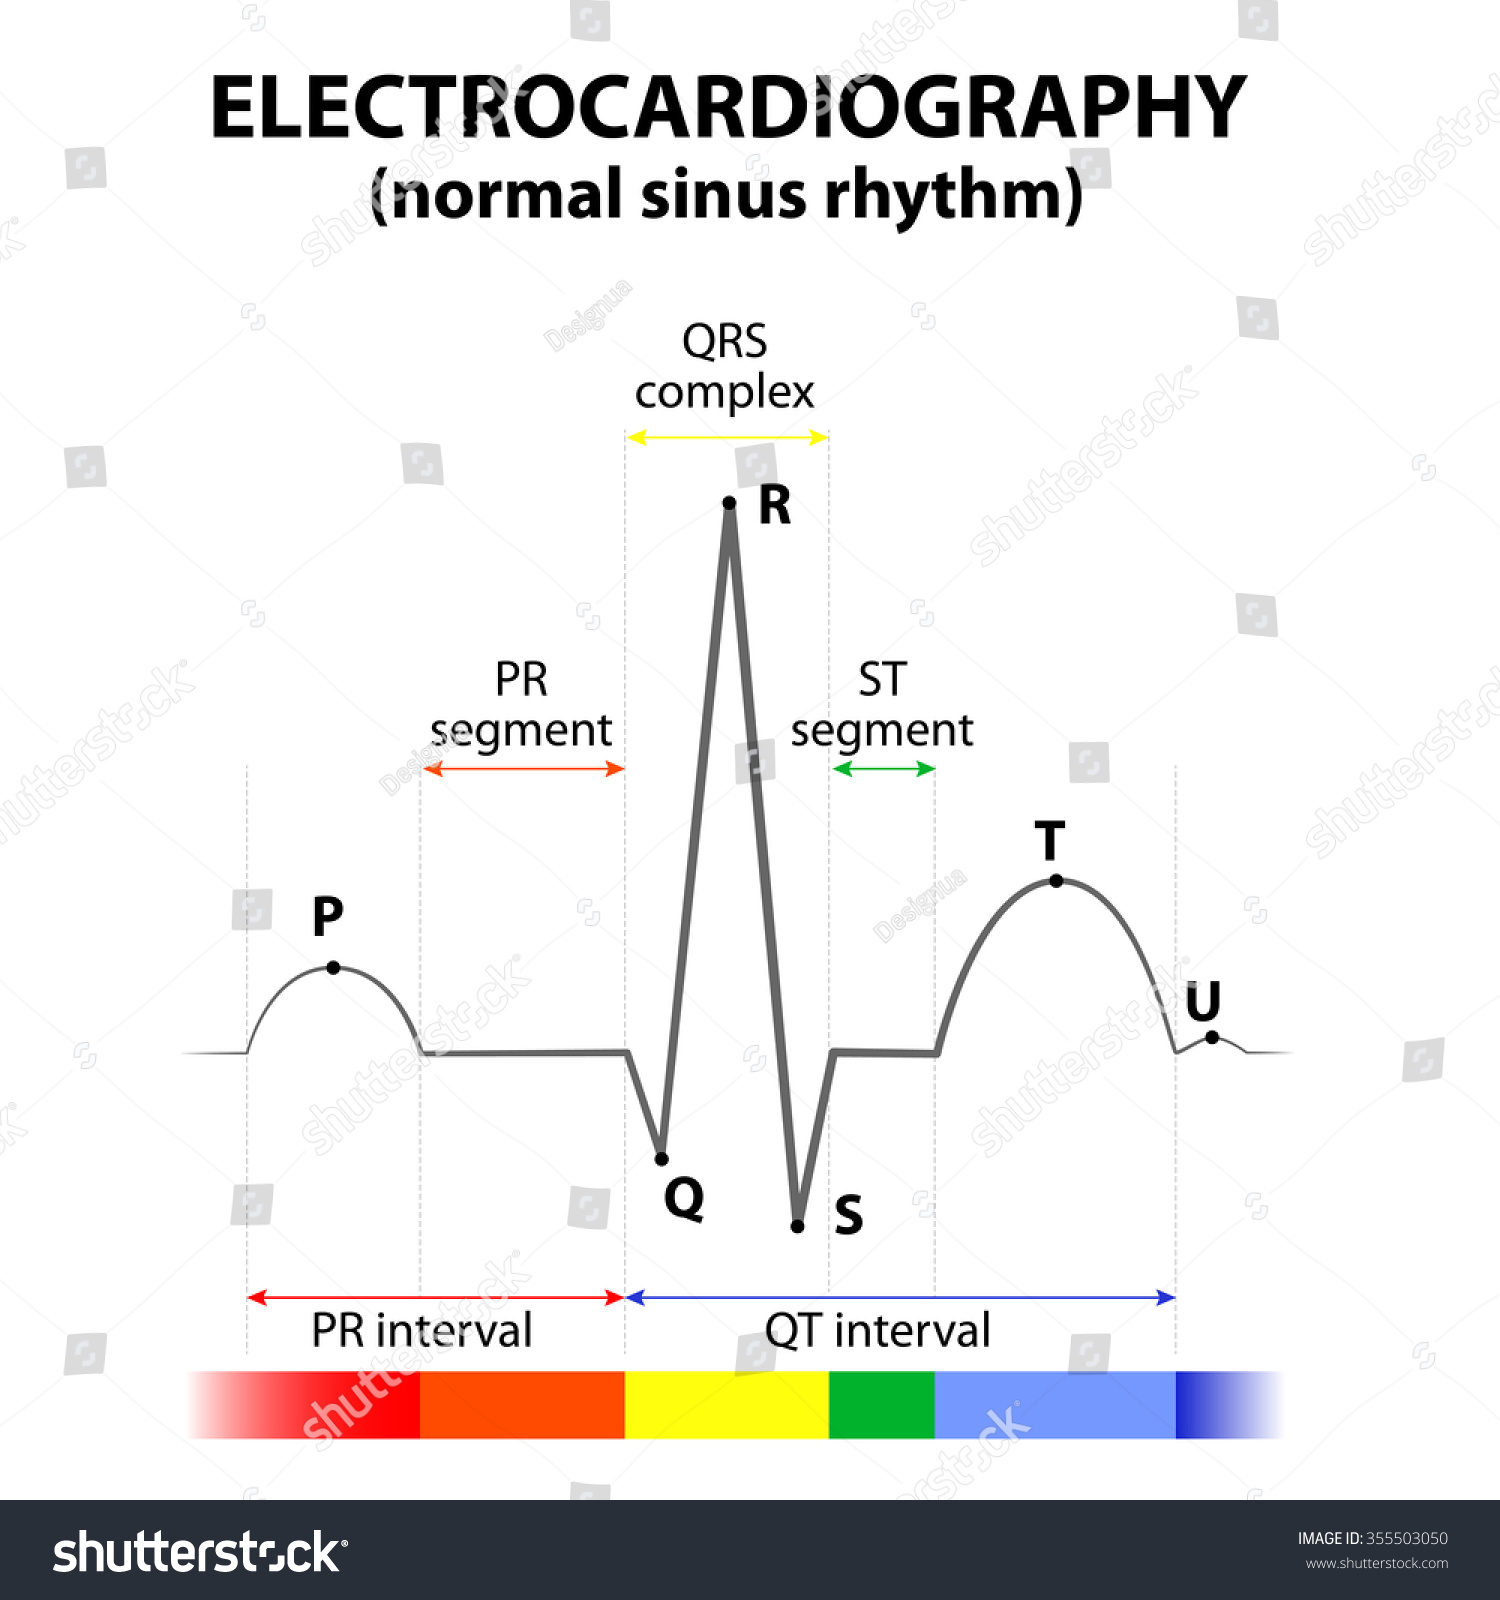 Ecg heart normal sinus rhythm schematic stock vector 2018 ecg of a heart in normal sinus rhythm schematic representation wave and segment names ccuart Choice Image